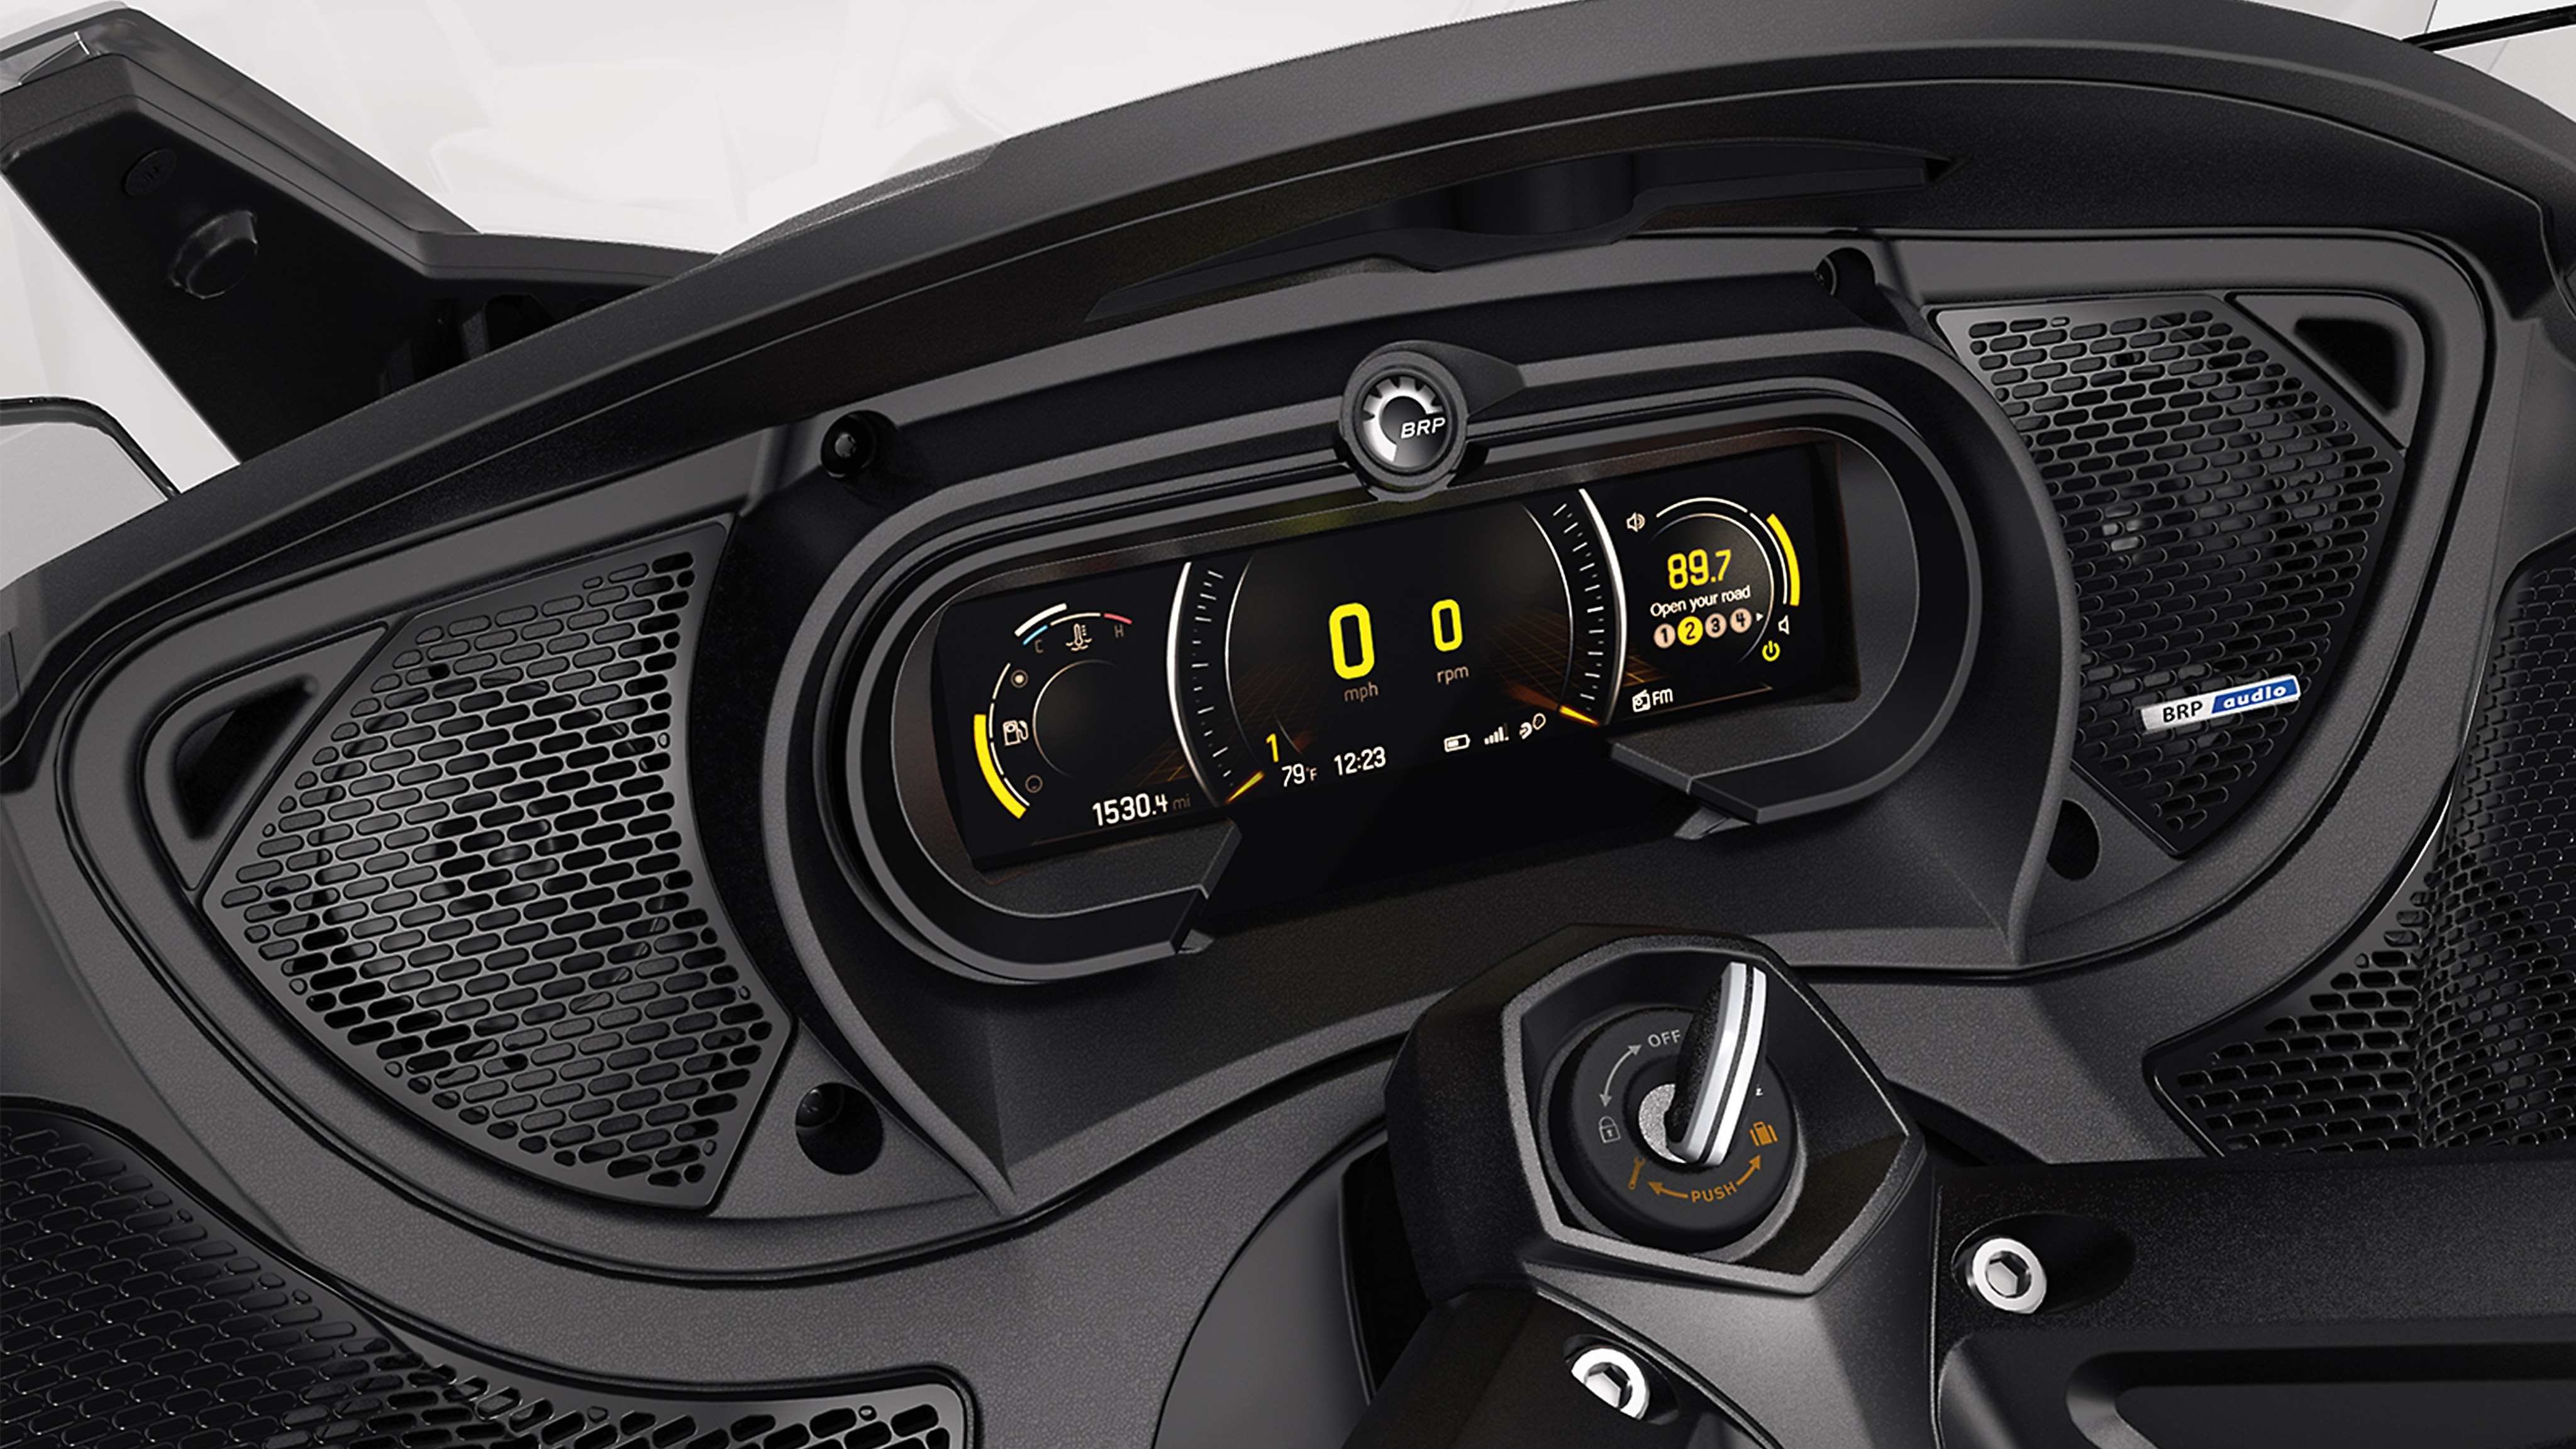 The instrumentation and BRP Connect display of a Can-Am Spyder vehicle